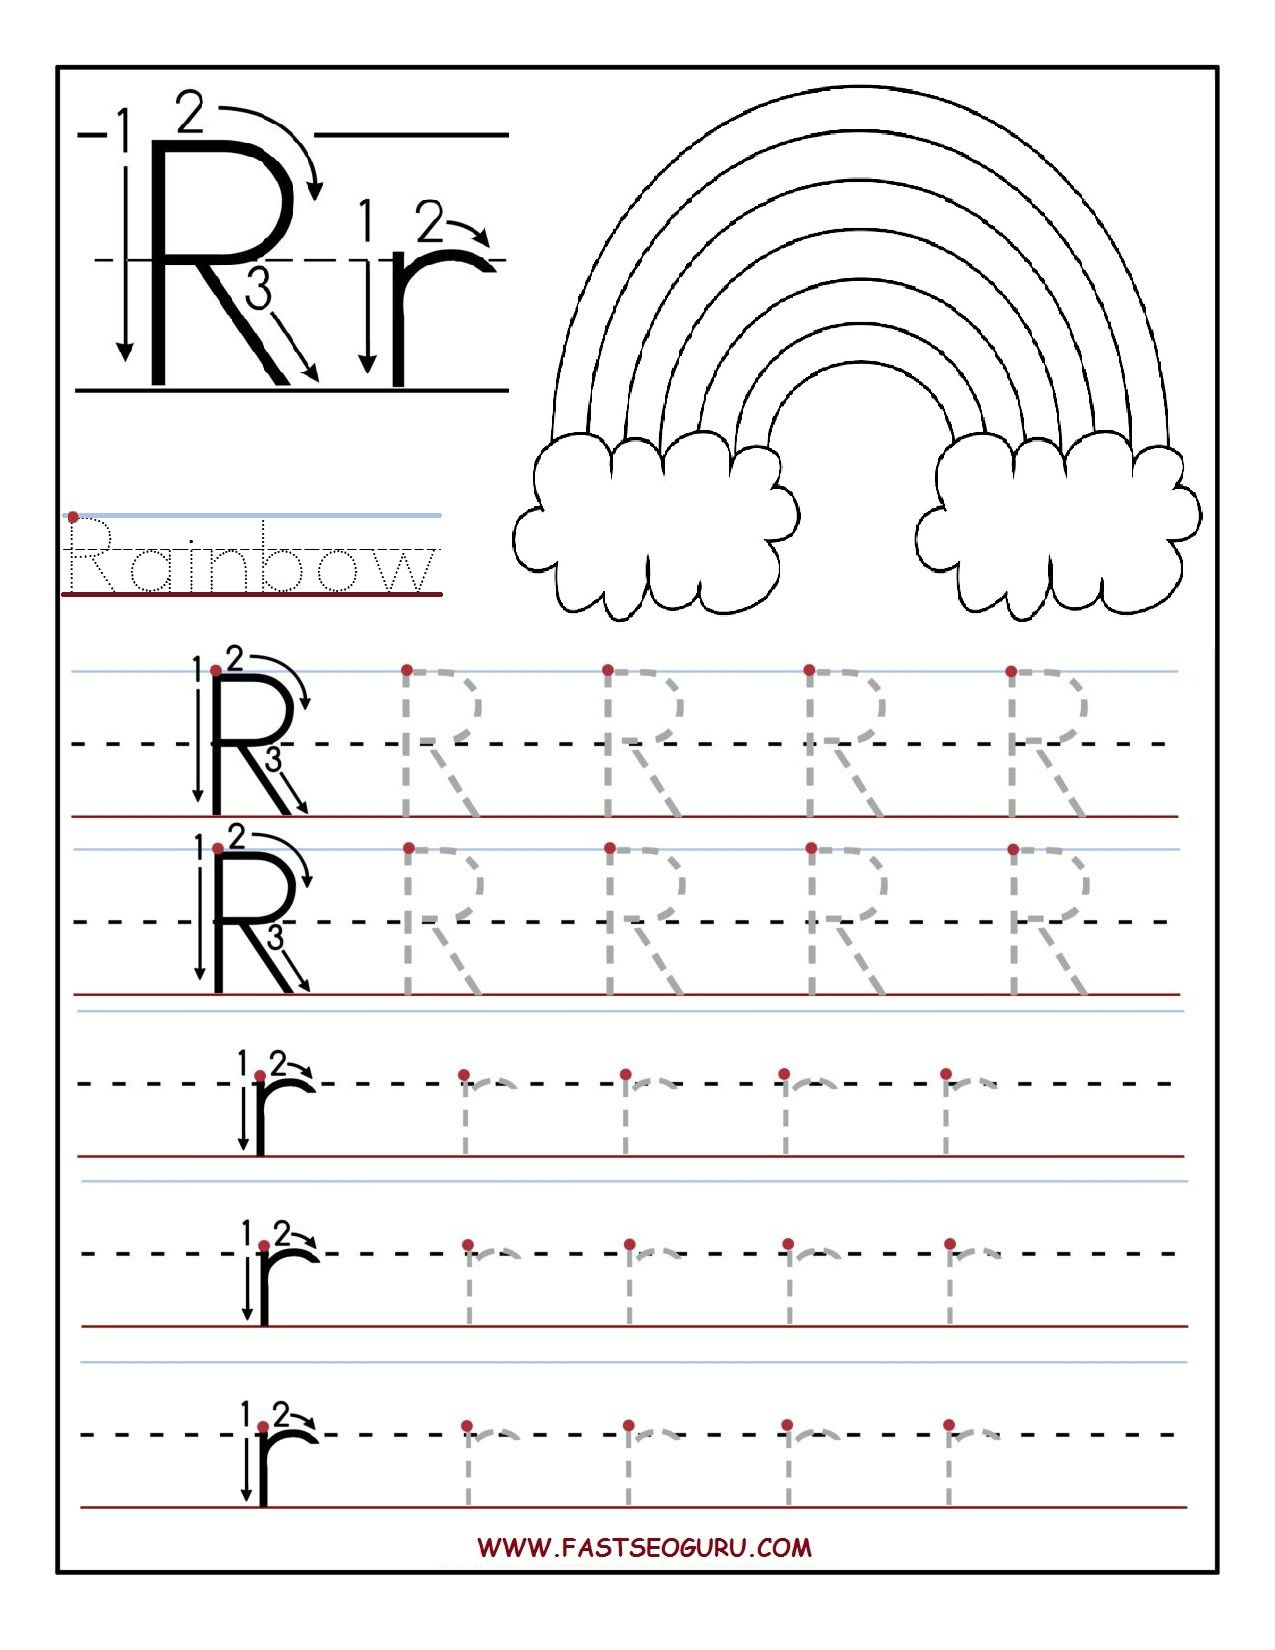 Printable Letter R Tracing Worksheets For Preschool pertaining to Letter R Worksheets Free Printable